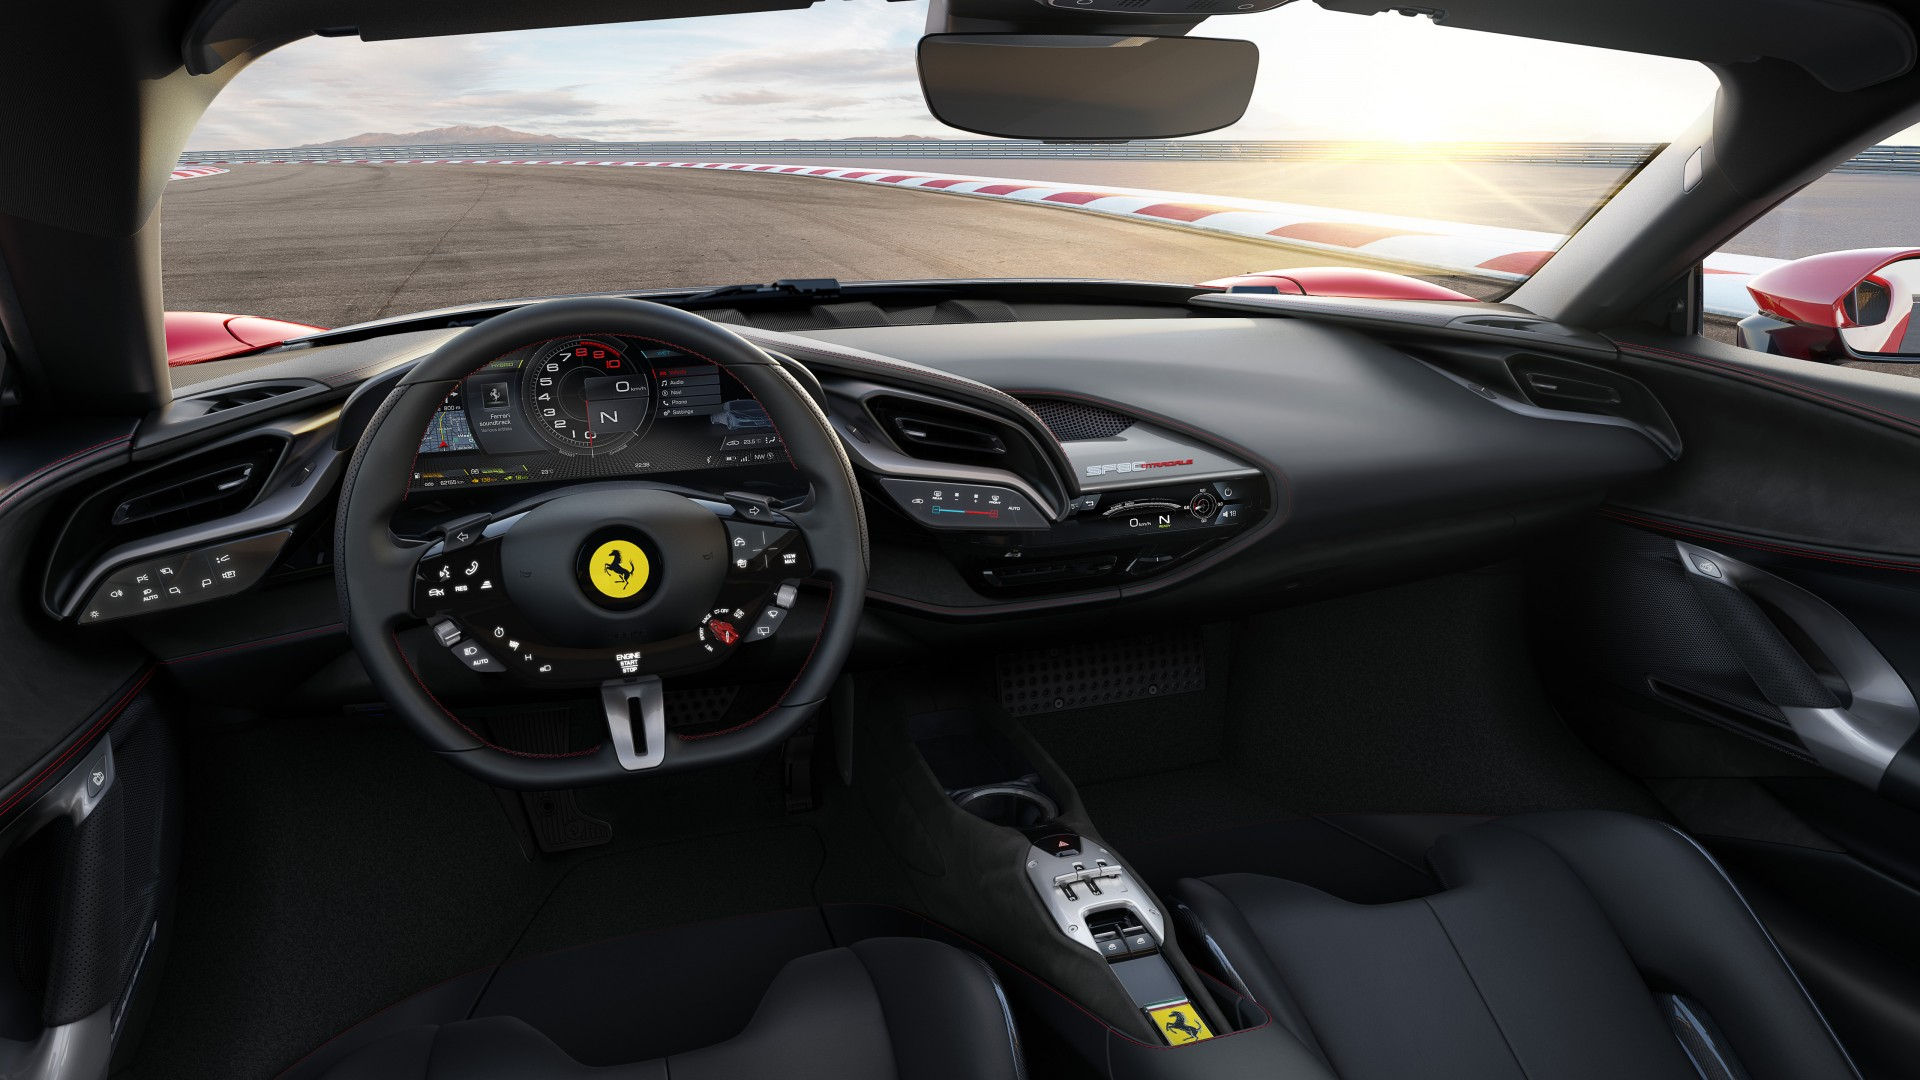 Ferrari SF90 Stradale 2019 4K Interior Wallpaper | HD Car ...